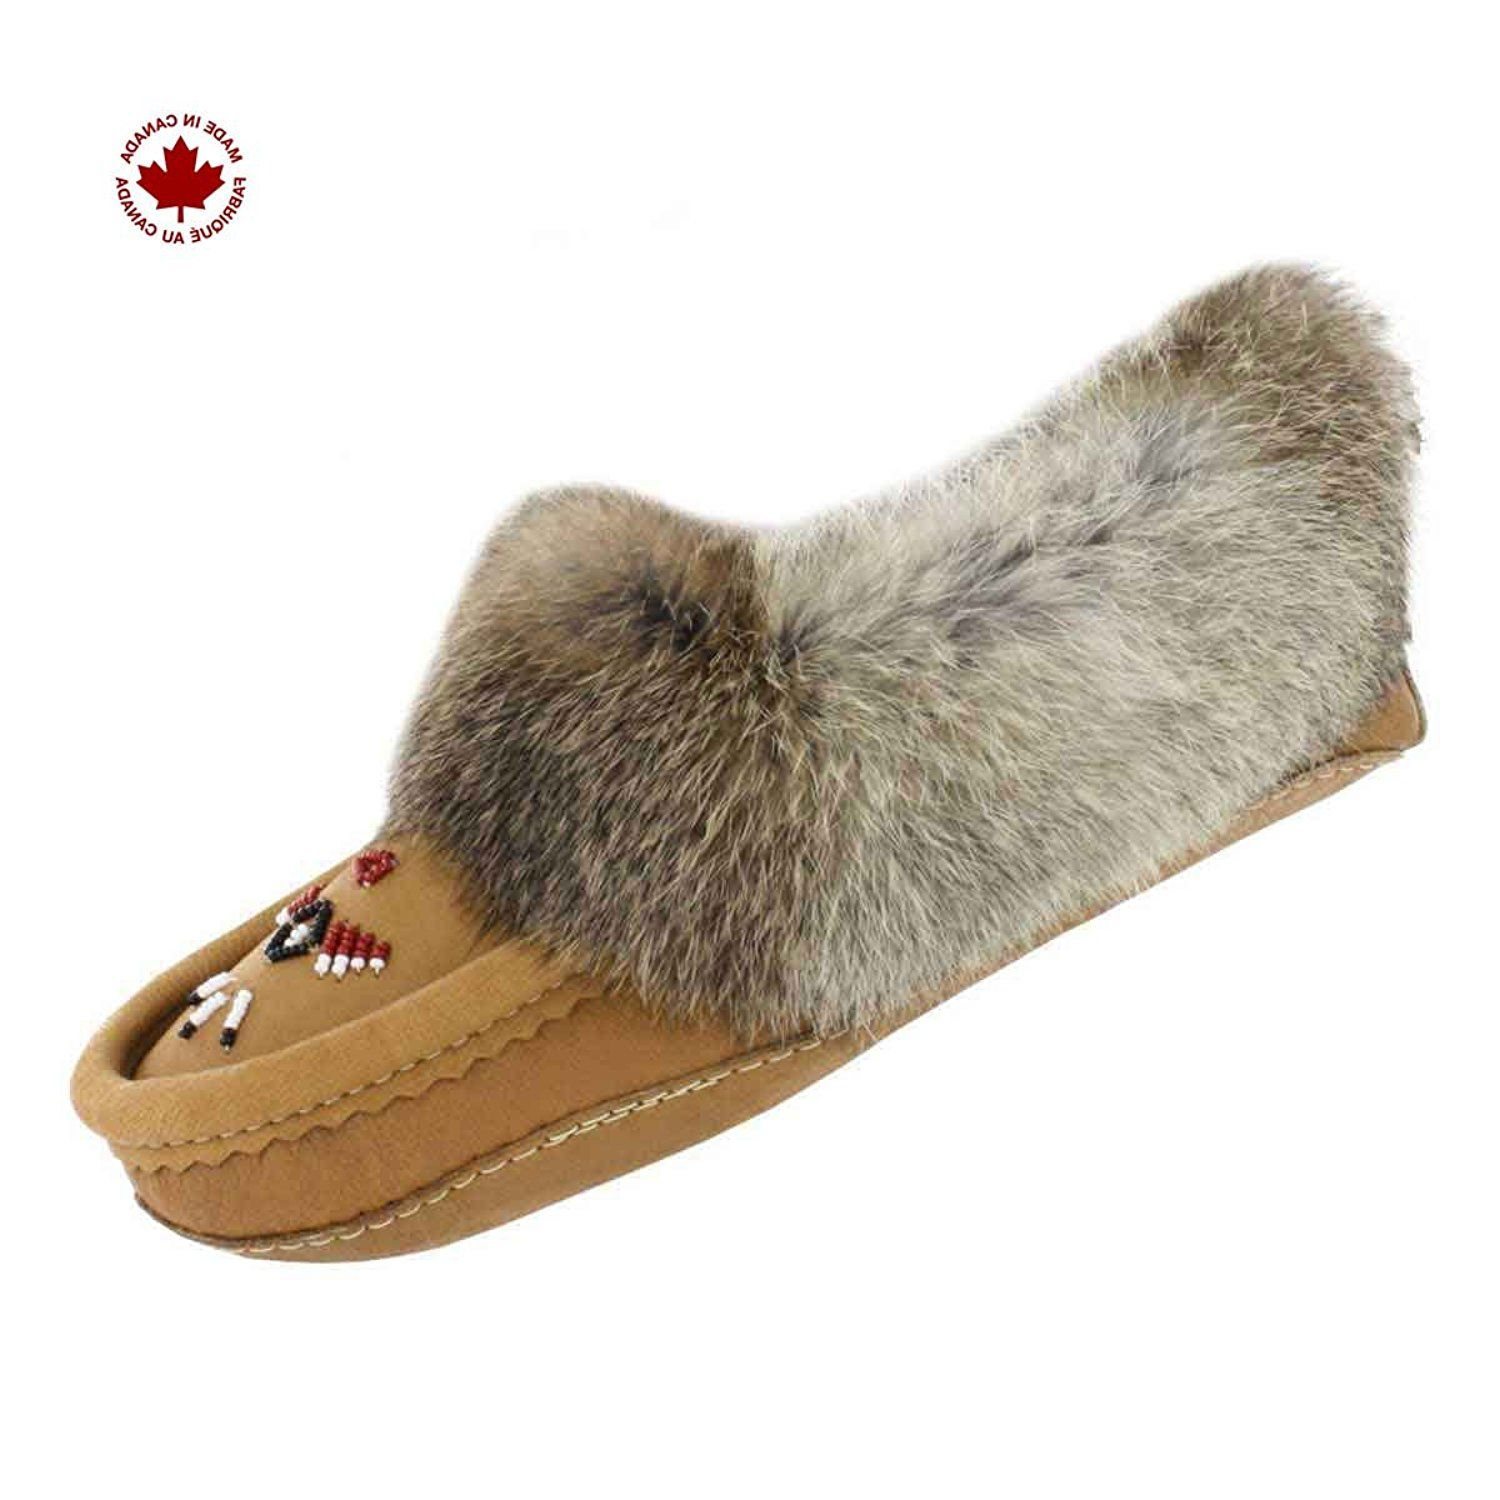 SoftMoc Women's Rabbit Fur Collar Moccasin ** Find out more details by clicking the image : Women's Shoes